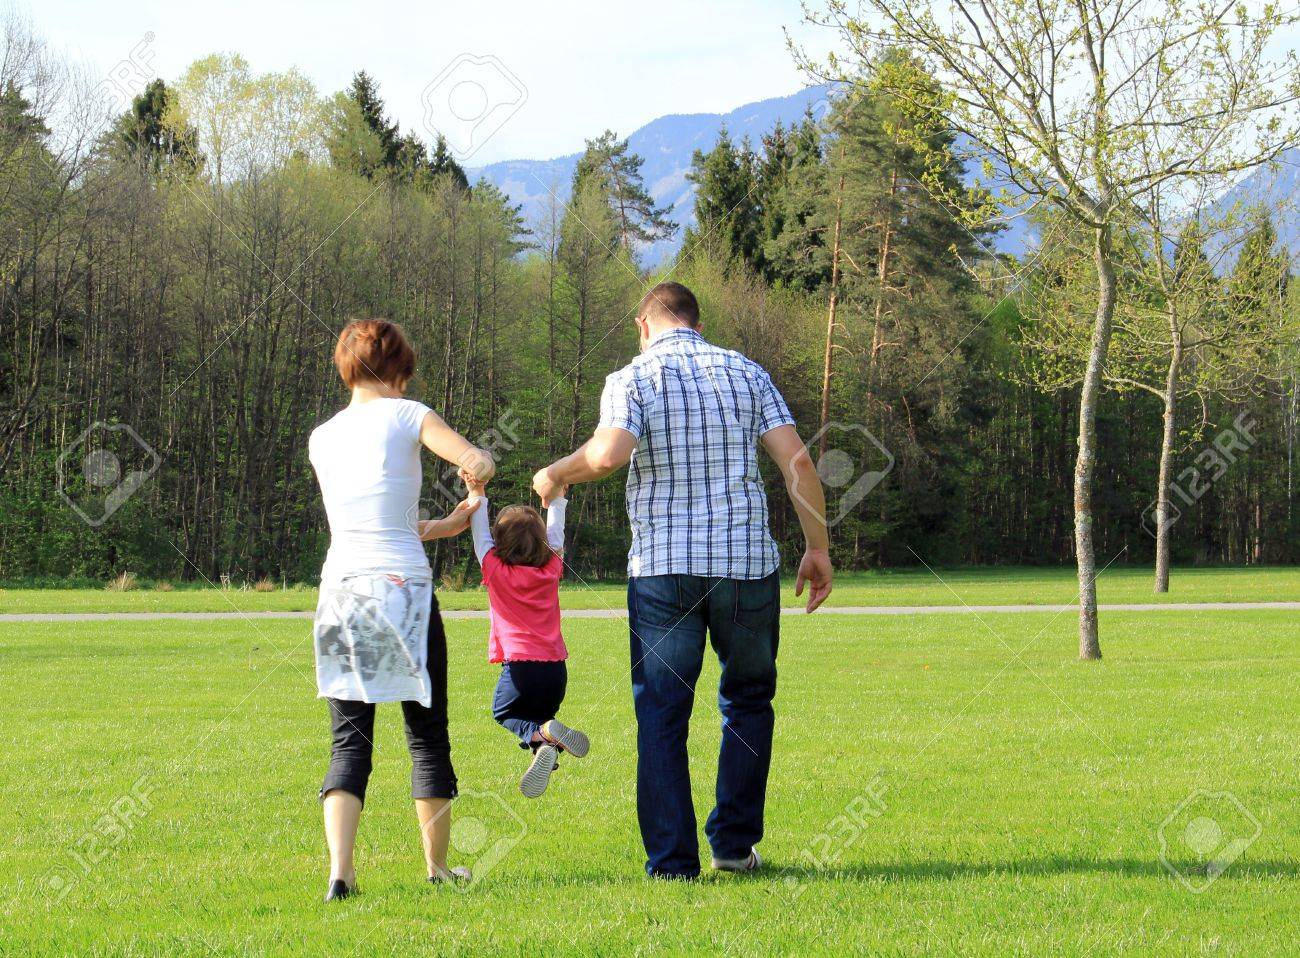 Having fun in the spring park; young child and her parents Stock Photo - 13611742